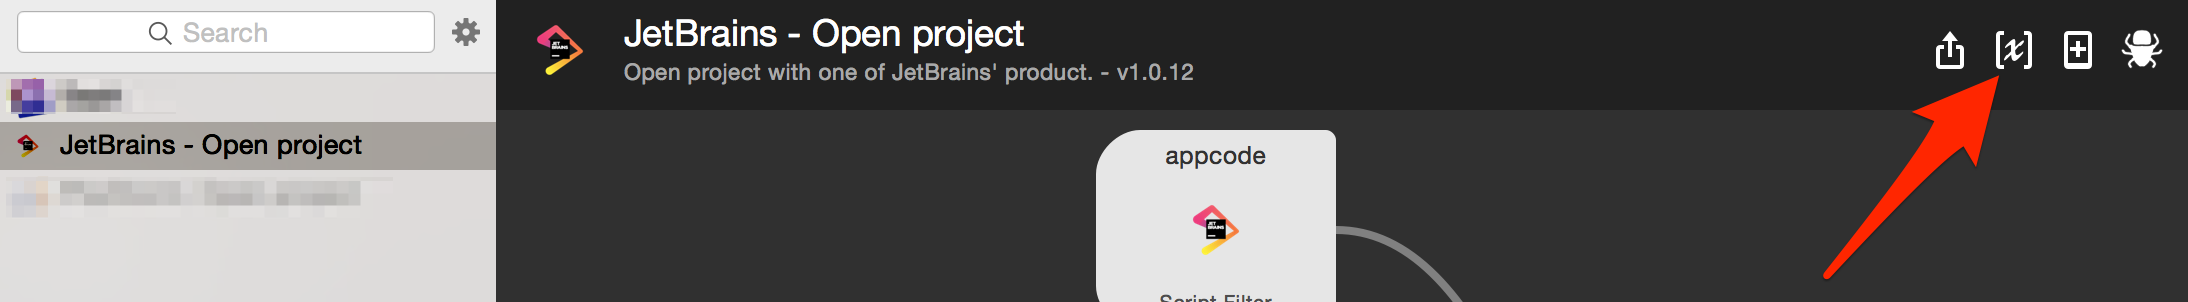 GitHub - bchatard/jetbrains-alfred-workflow: Open a project